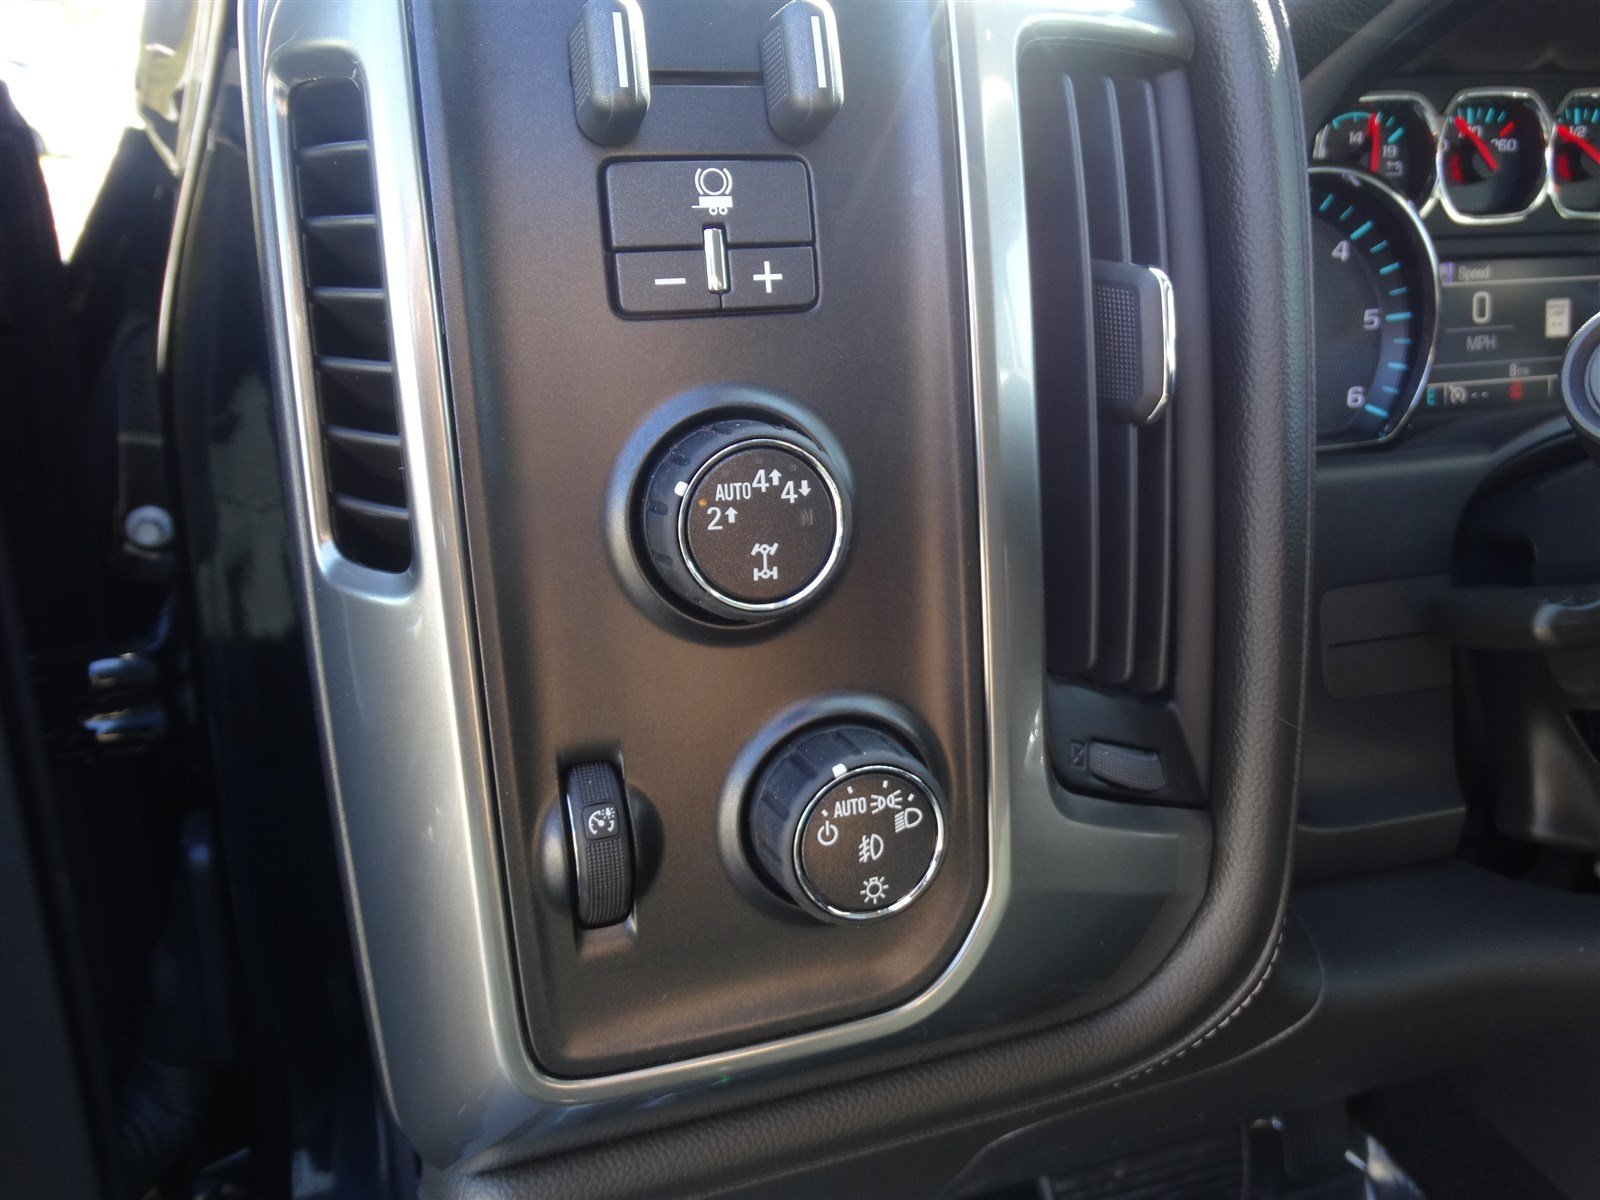 new 2017 chevrolet silverado 1500 ltz 4wd crew cab z71 midnight edition navigation. Black Bedroom Furniture Sets. Home Design Ideas